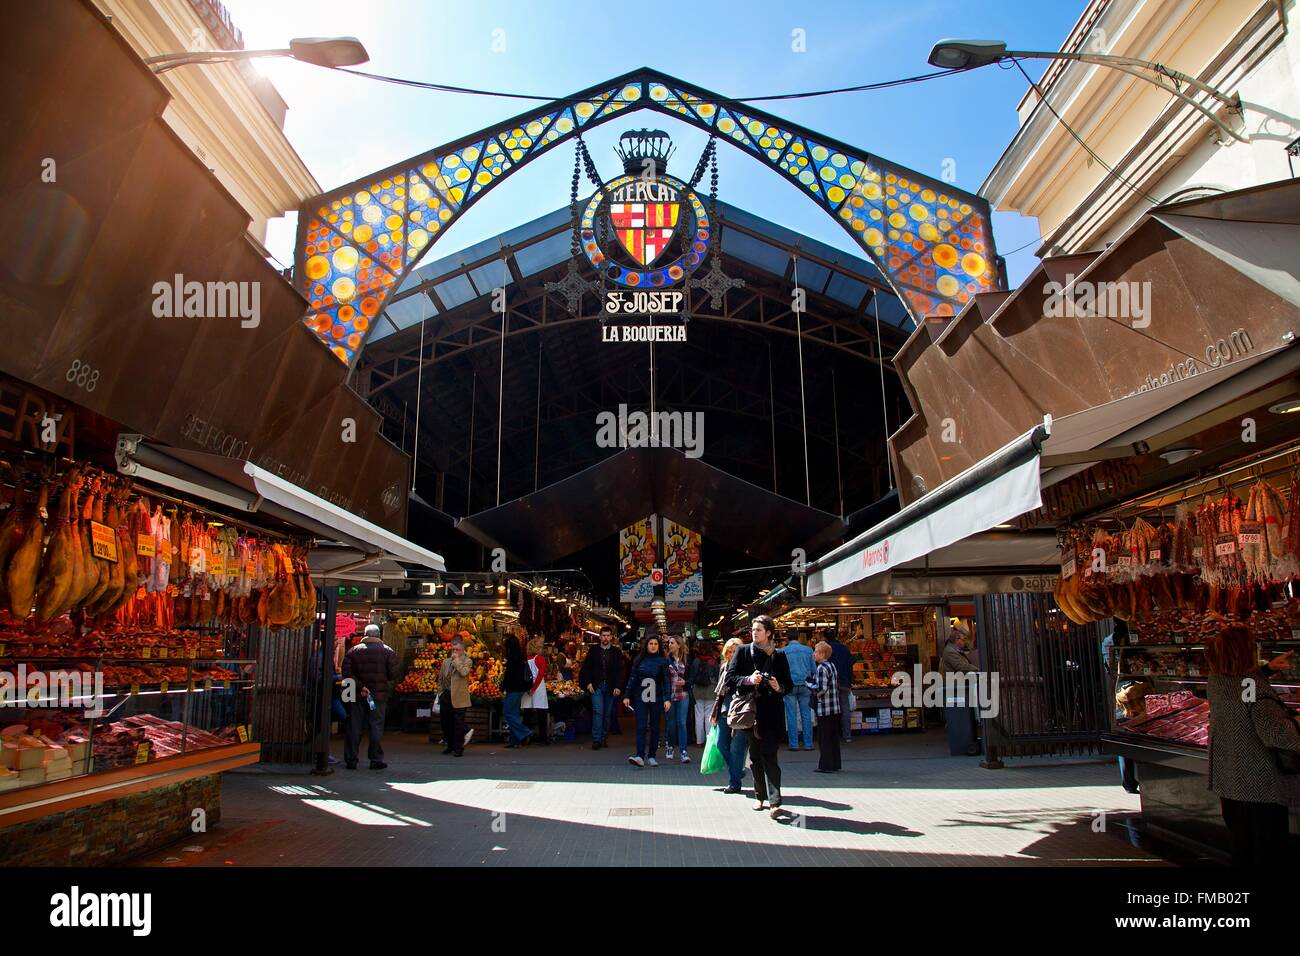 Spain, Catalonia, Barcelona, entrance of Boqueria market - Stock Image